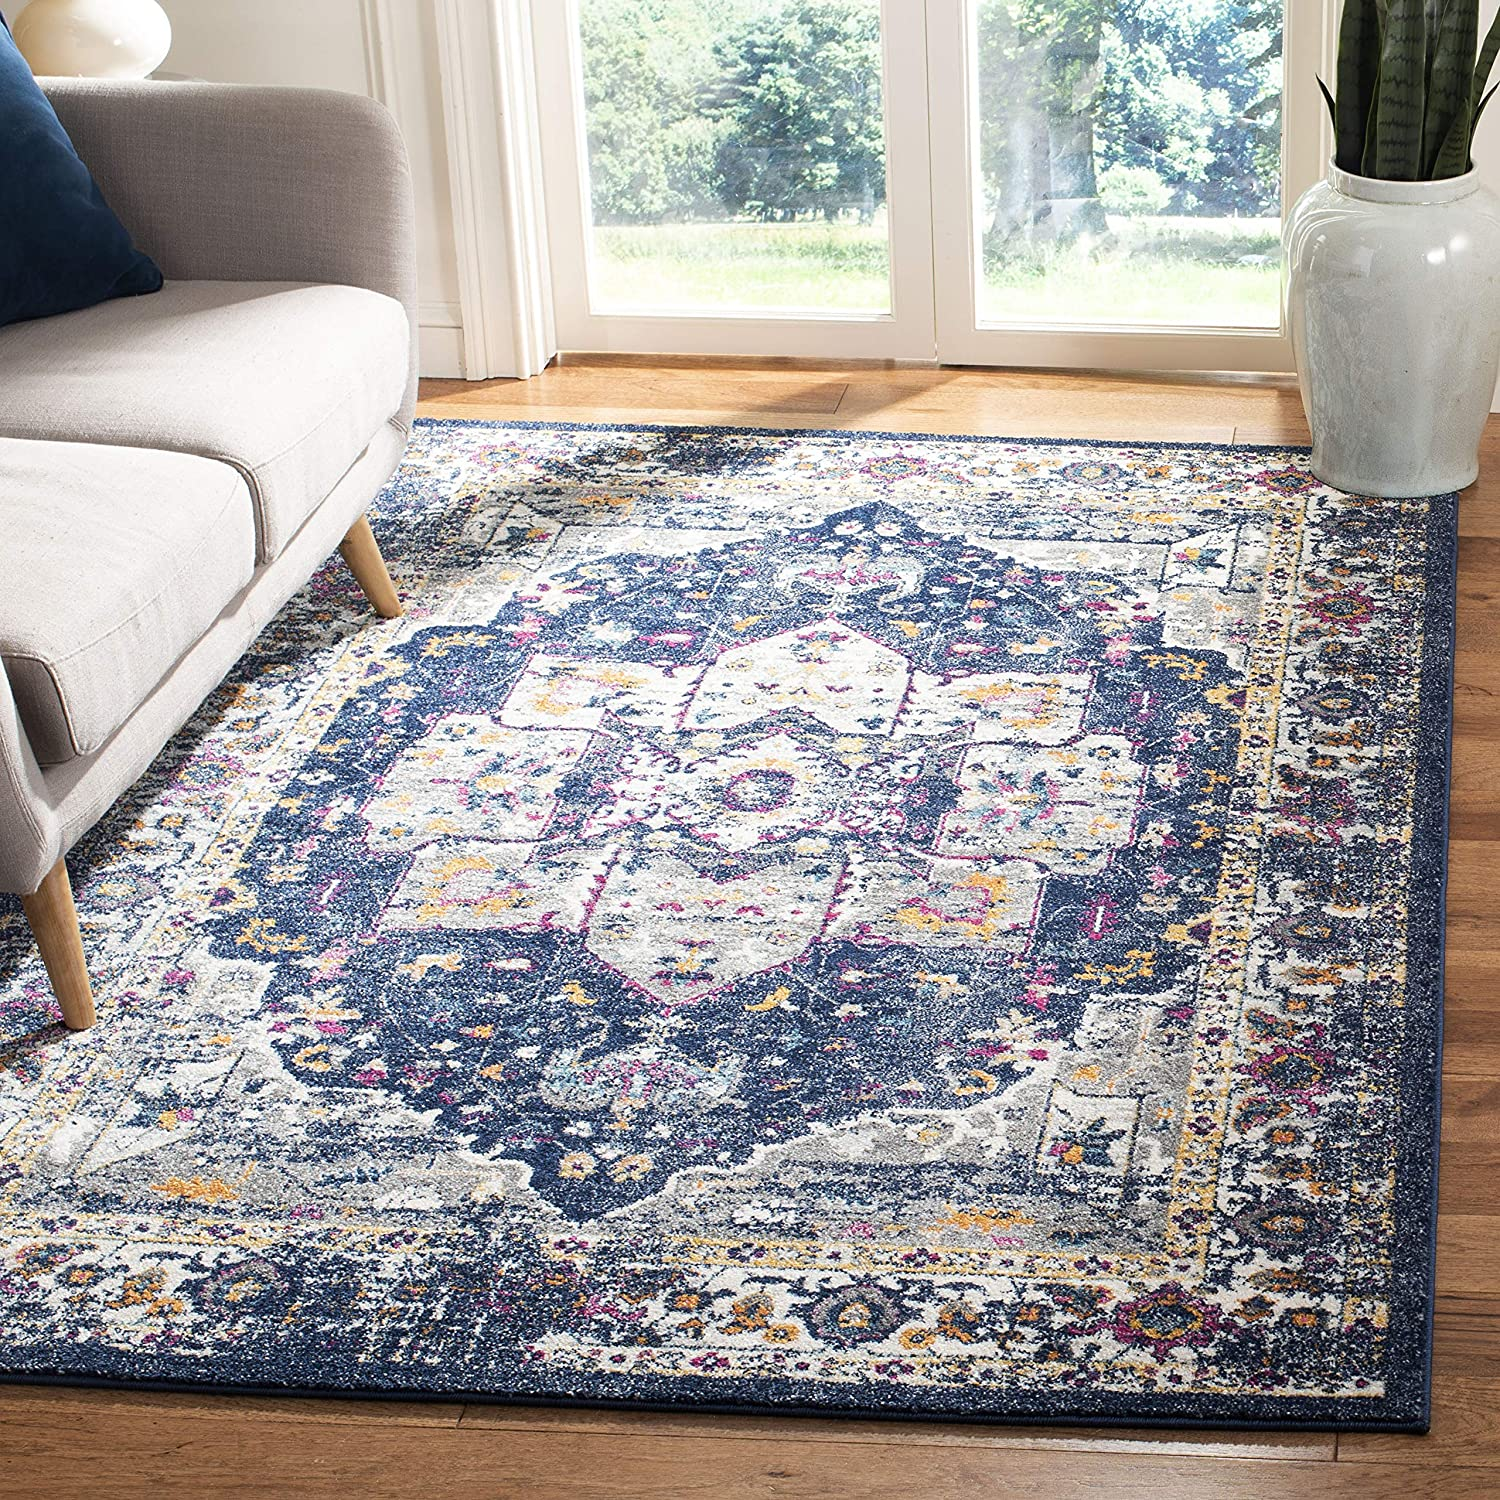 Safavieh Evoke Collection EVK275N Area Rug, 8' x 10', Navy/Grey